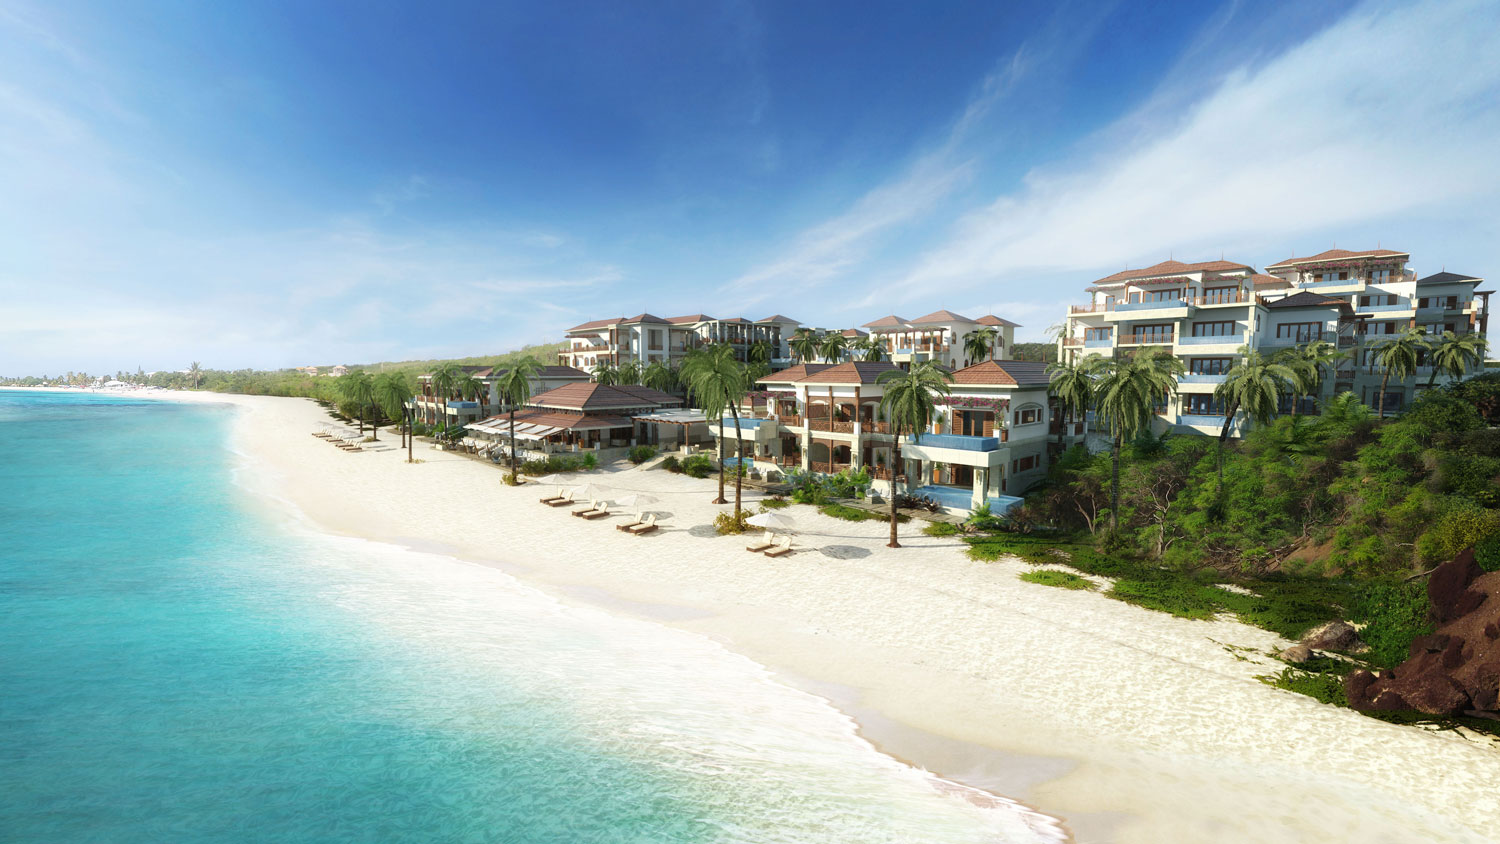 The Resort Is Being Designed By World Renowned Caribbean Architects Lane Pettigrew Ociates Initiating A Clic Style With Modern Overtones